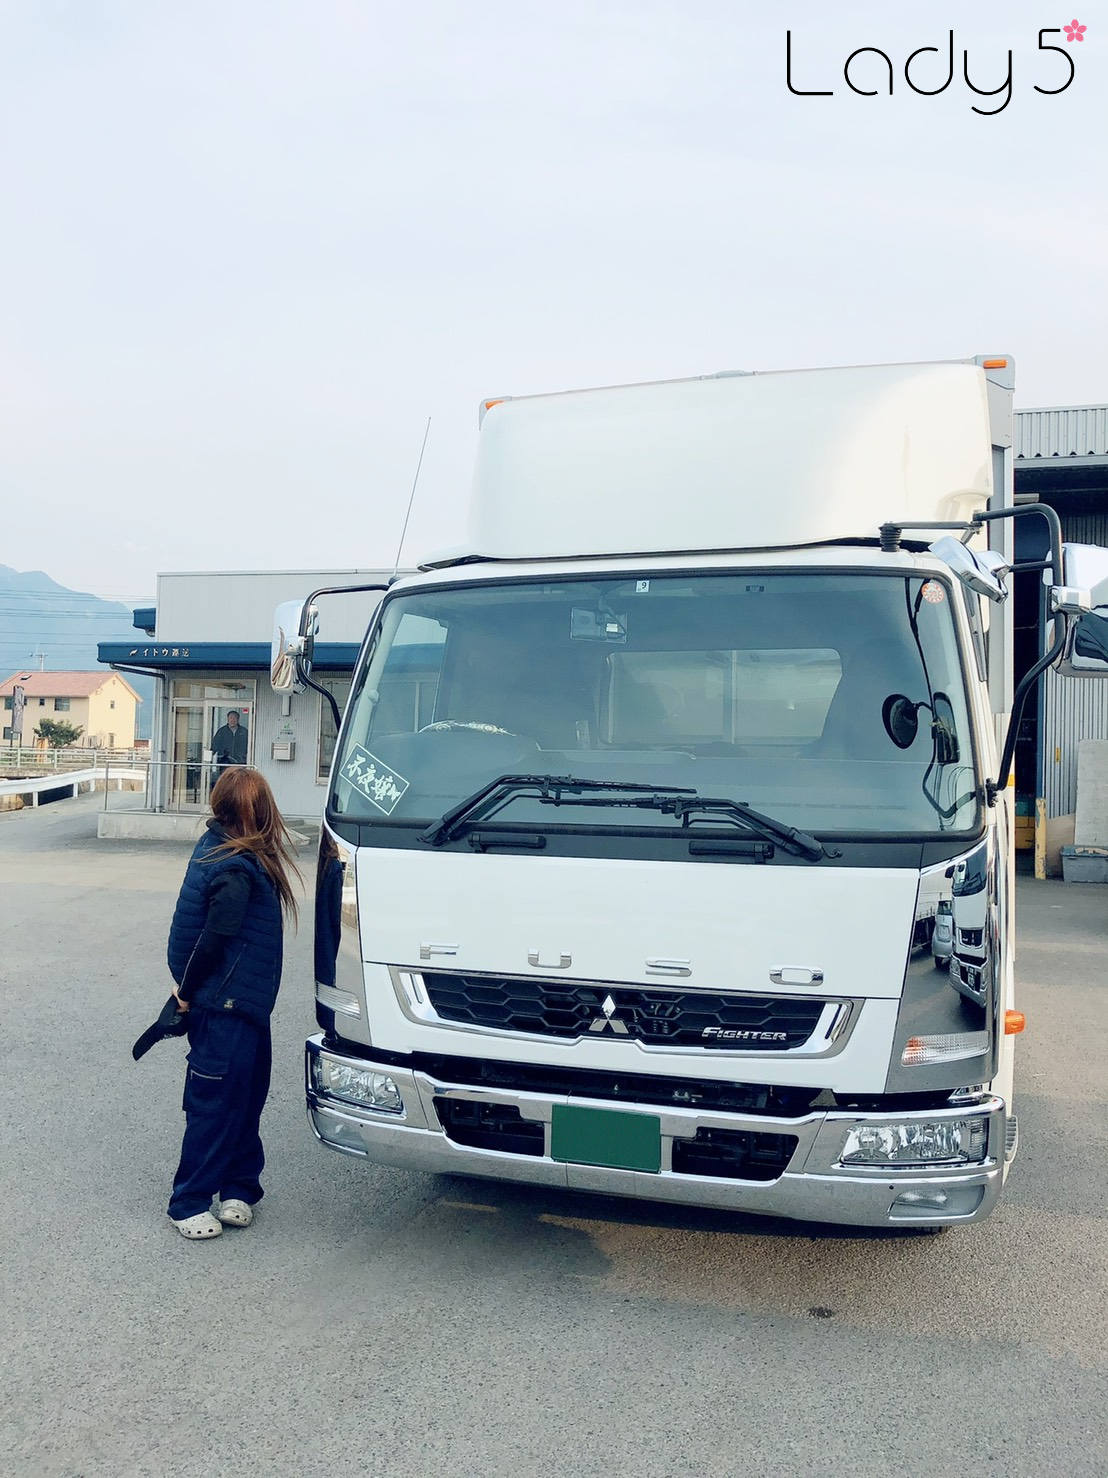 trucklady5_interview_macchi5